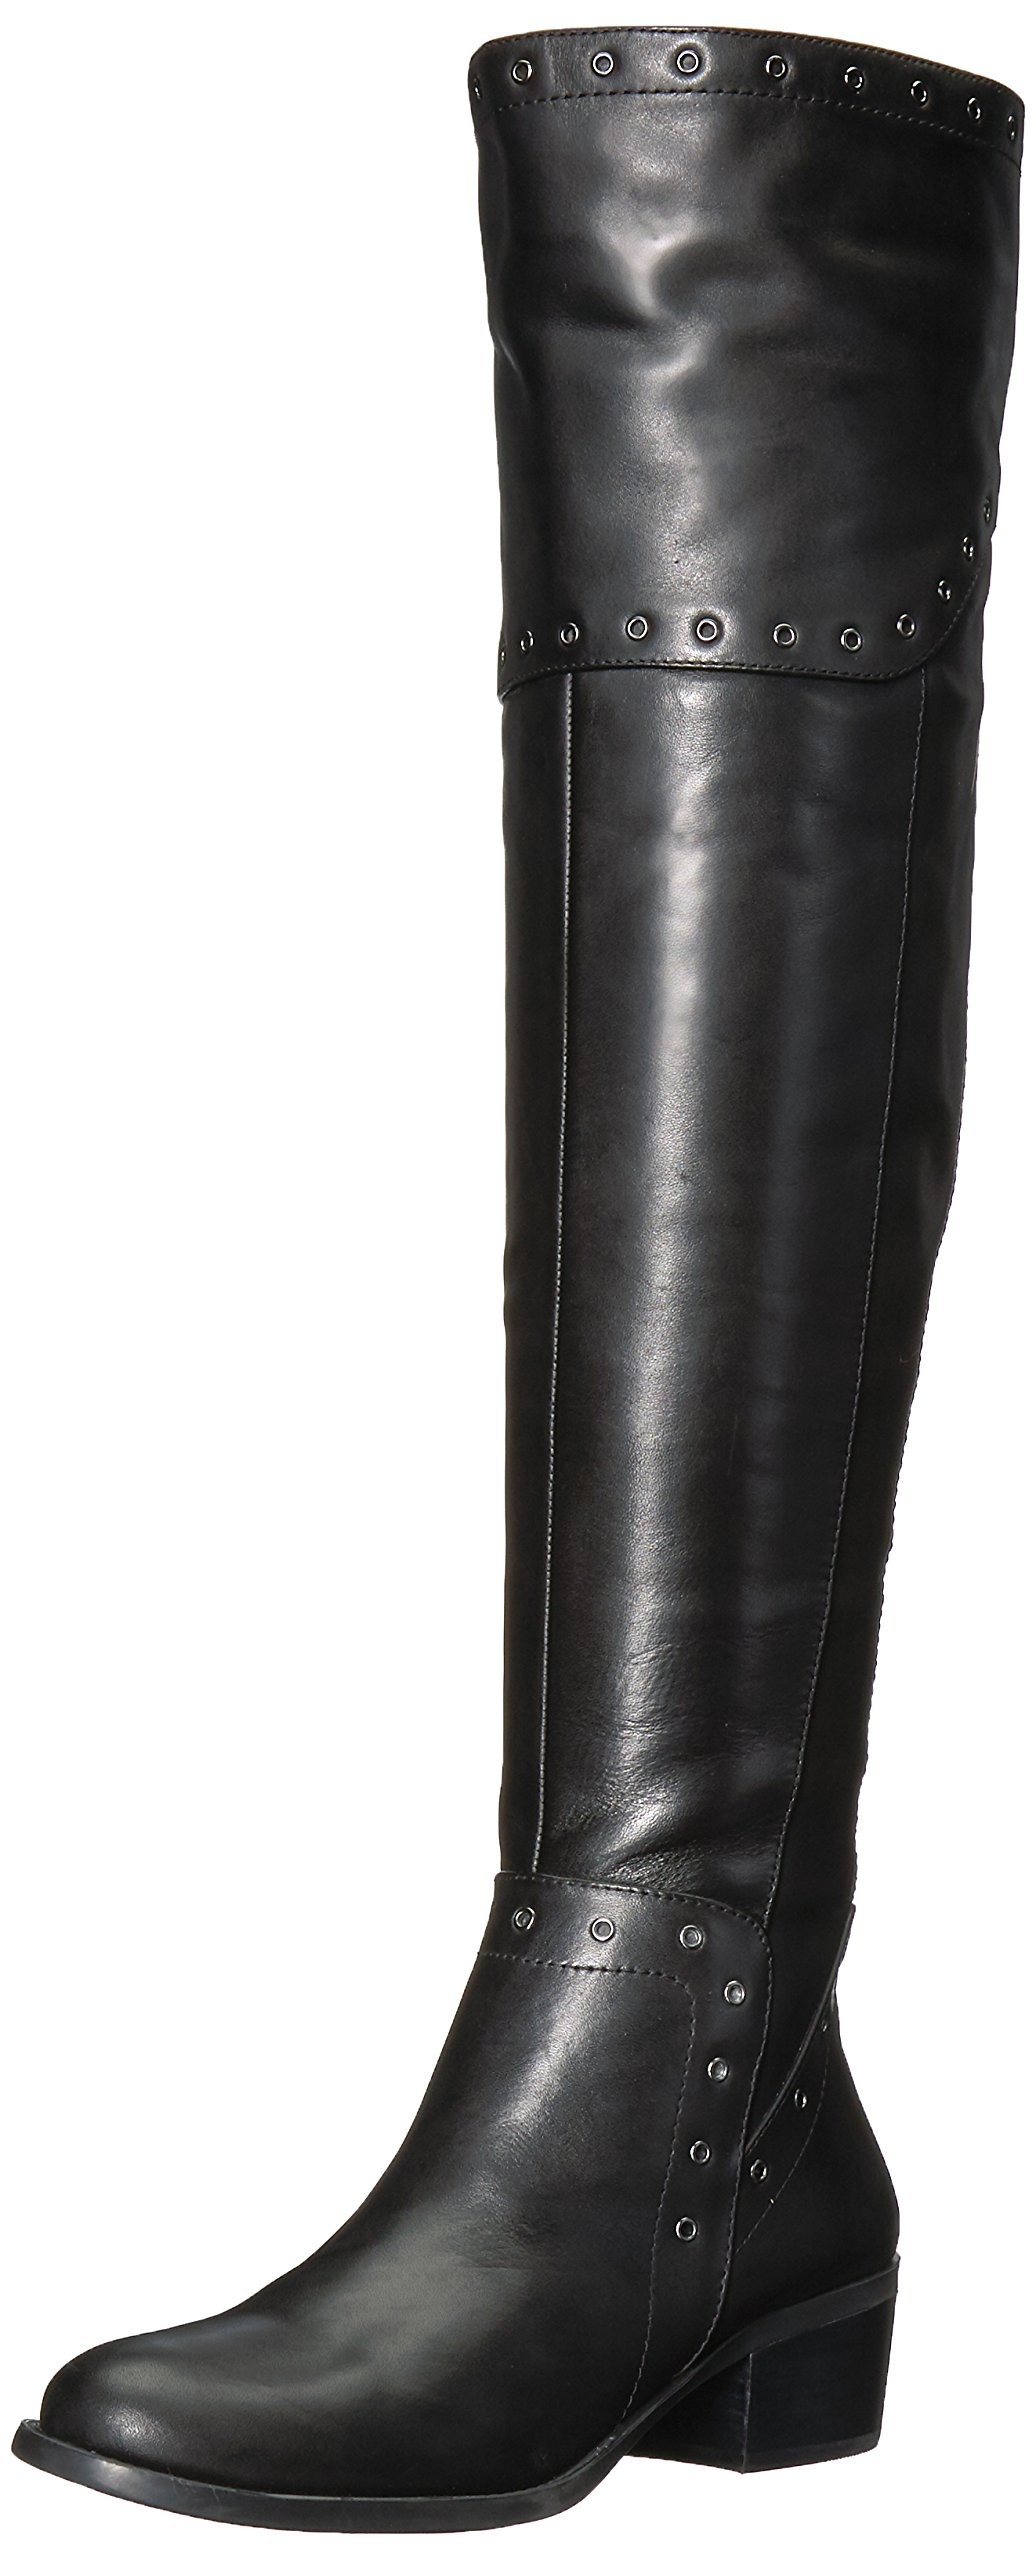 Vince Camuto Women's Bestan Over The Knee Boot, Black, 8.5 Medium US